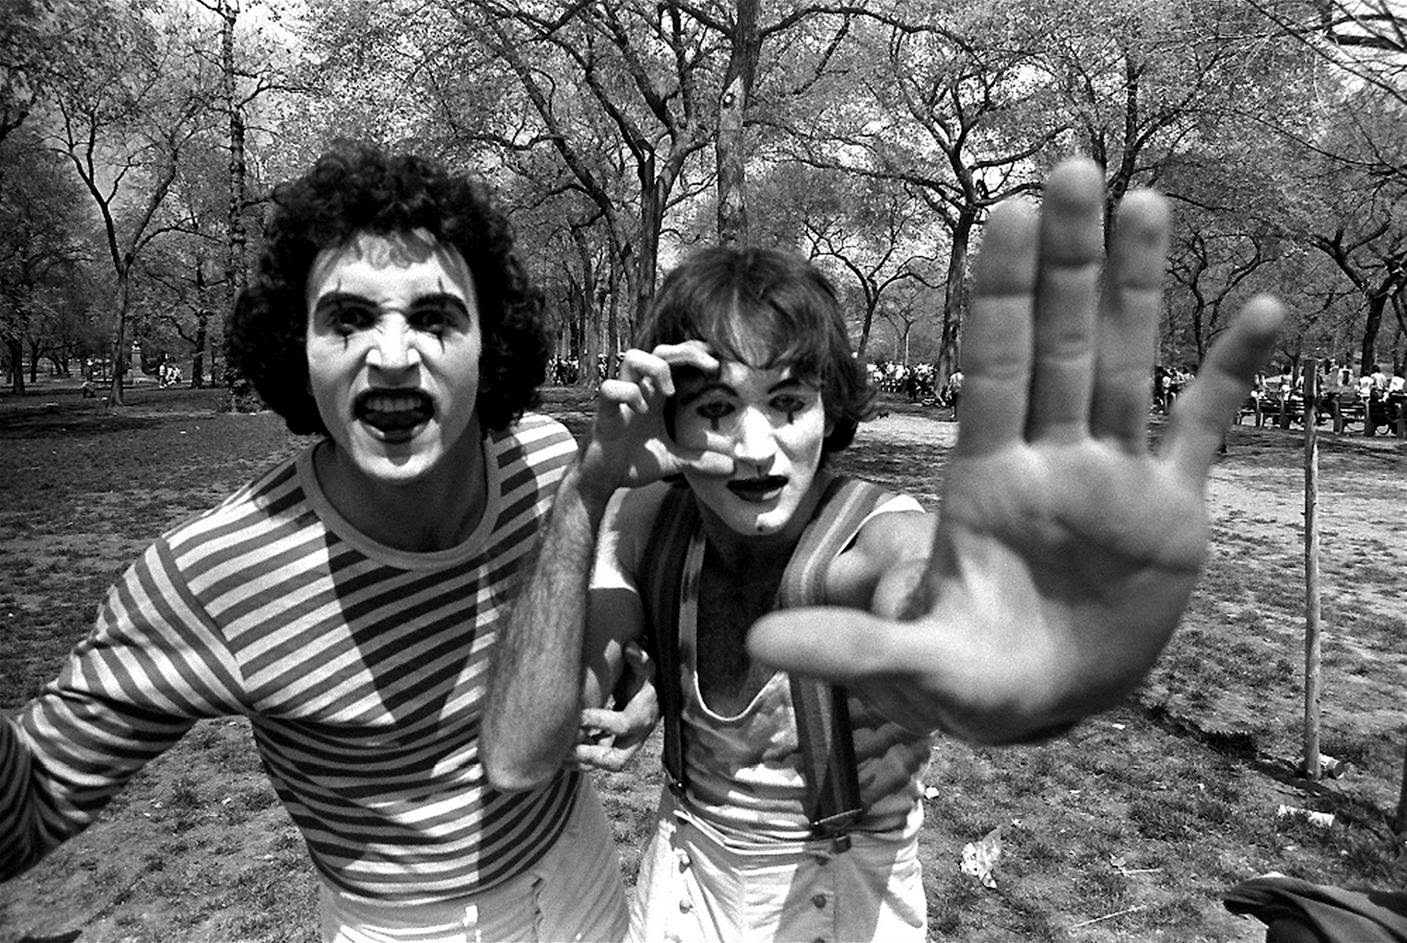 Robin Williams as a Mime in Central Park, 1974 (3)